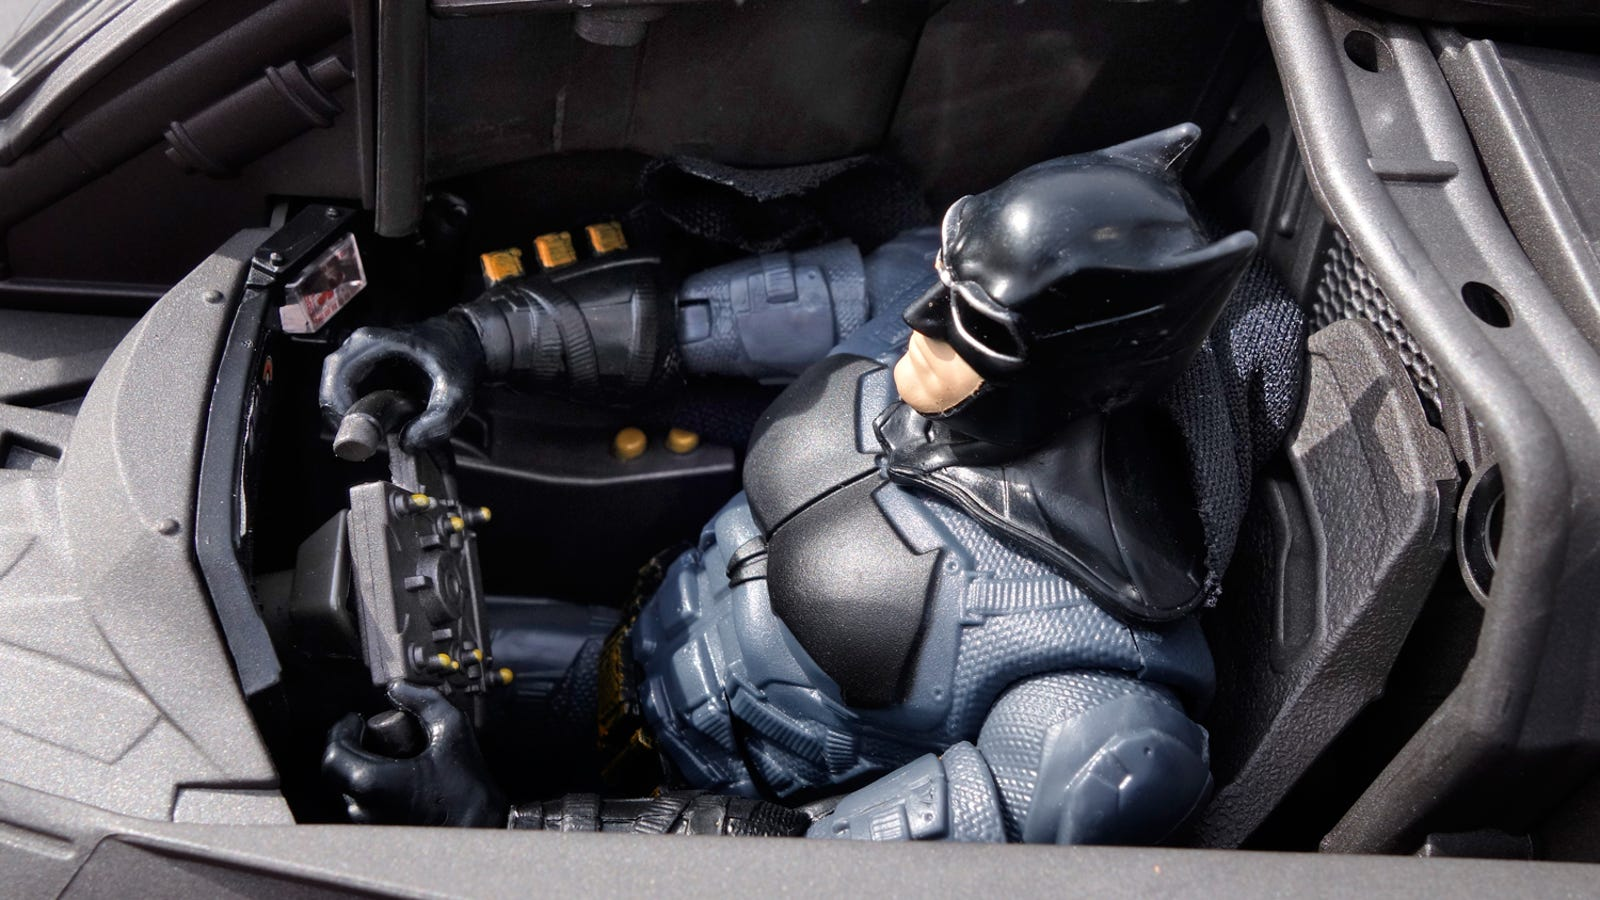 The cockpit's dashboard glows, and the steering wheel matches the movements of the Batmobile's front tires.